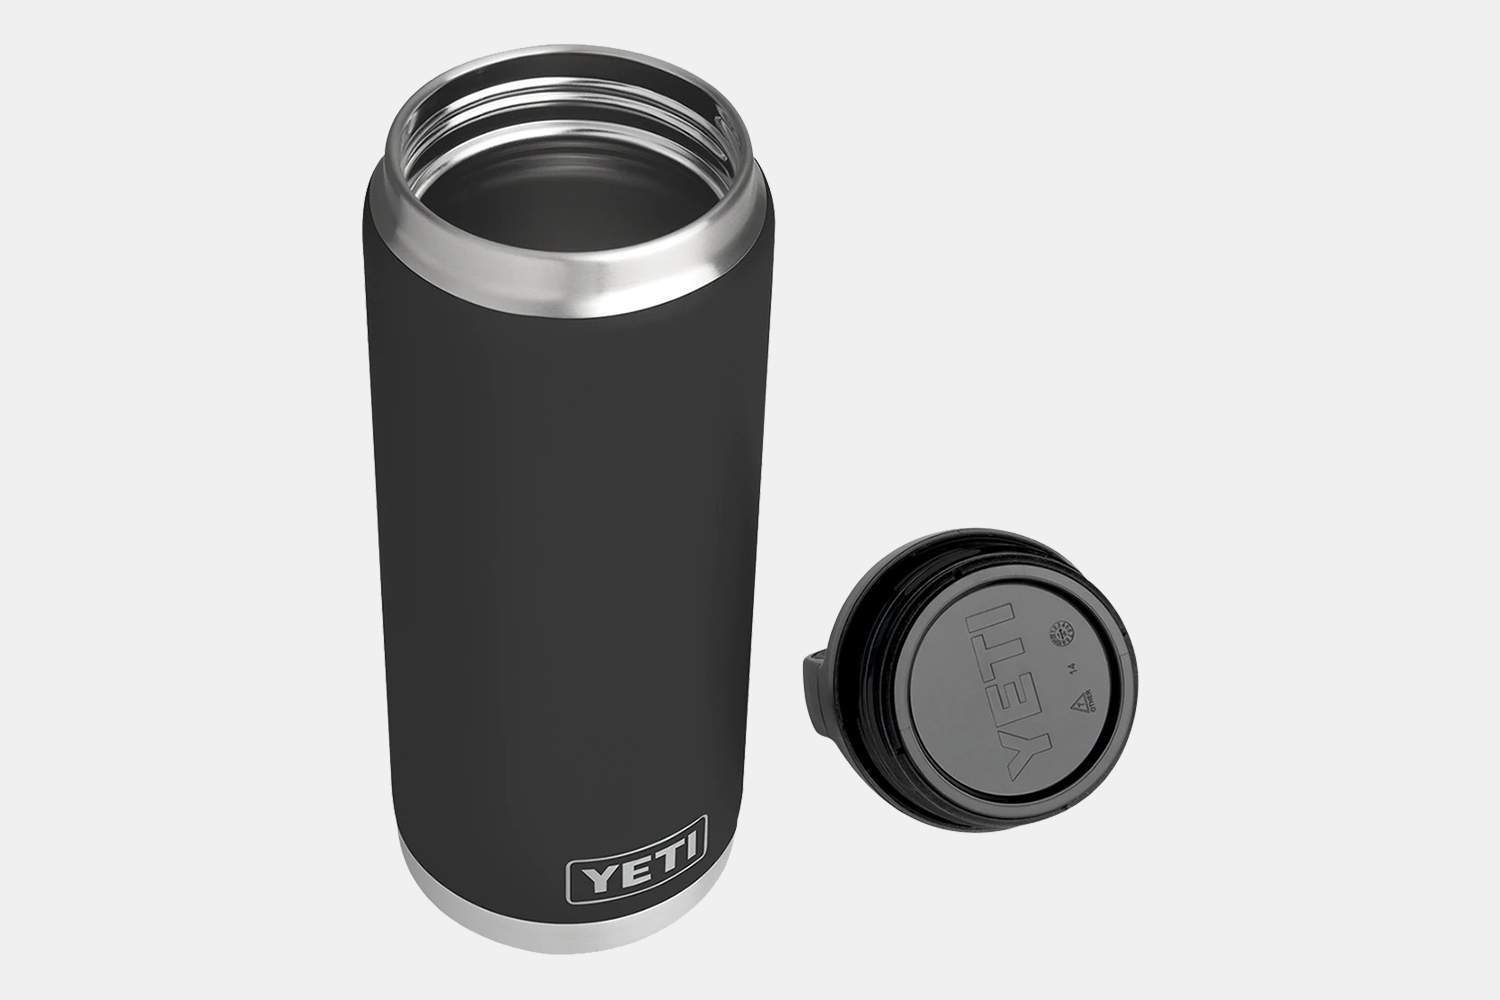 Yeti Rambler 26oz Bottle and caps